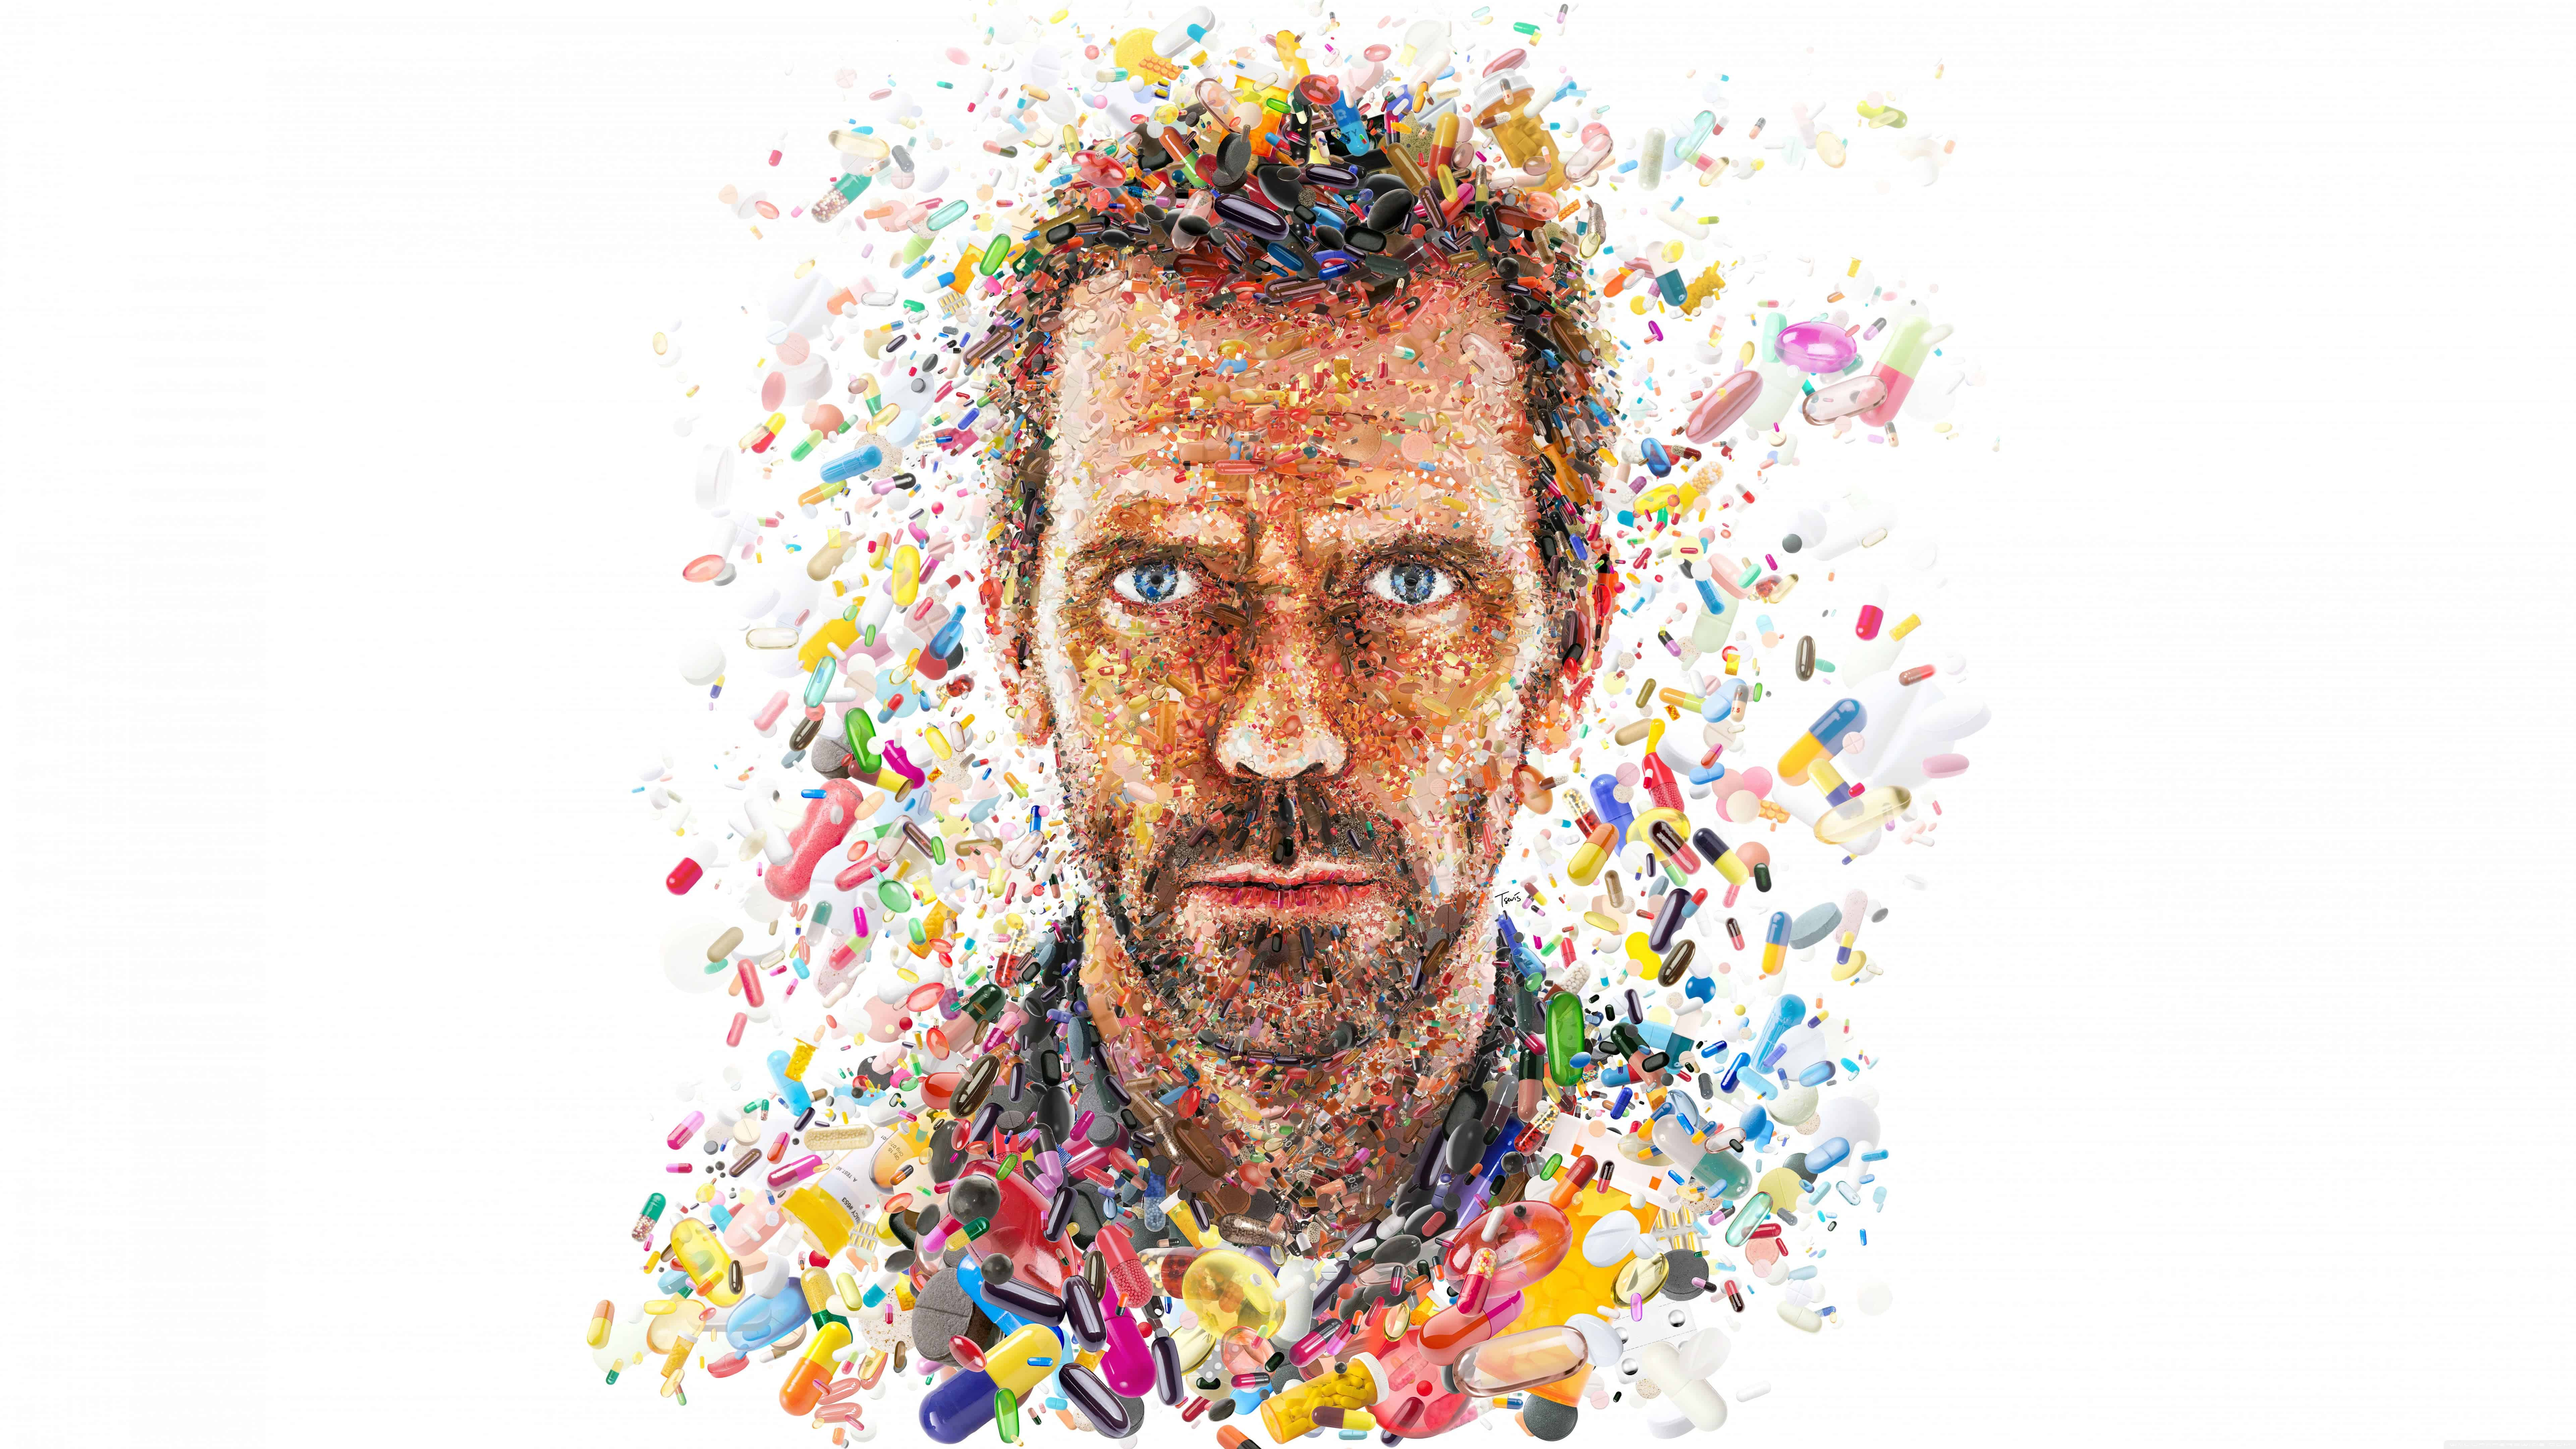 Dr House Wallpapers Top Free Dr House Backgrounds